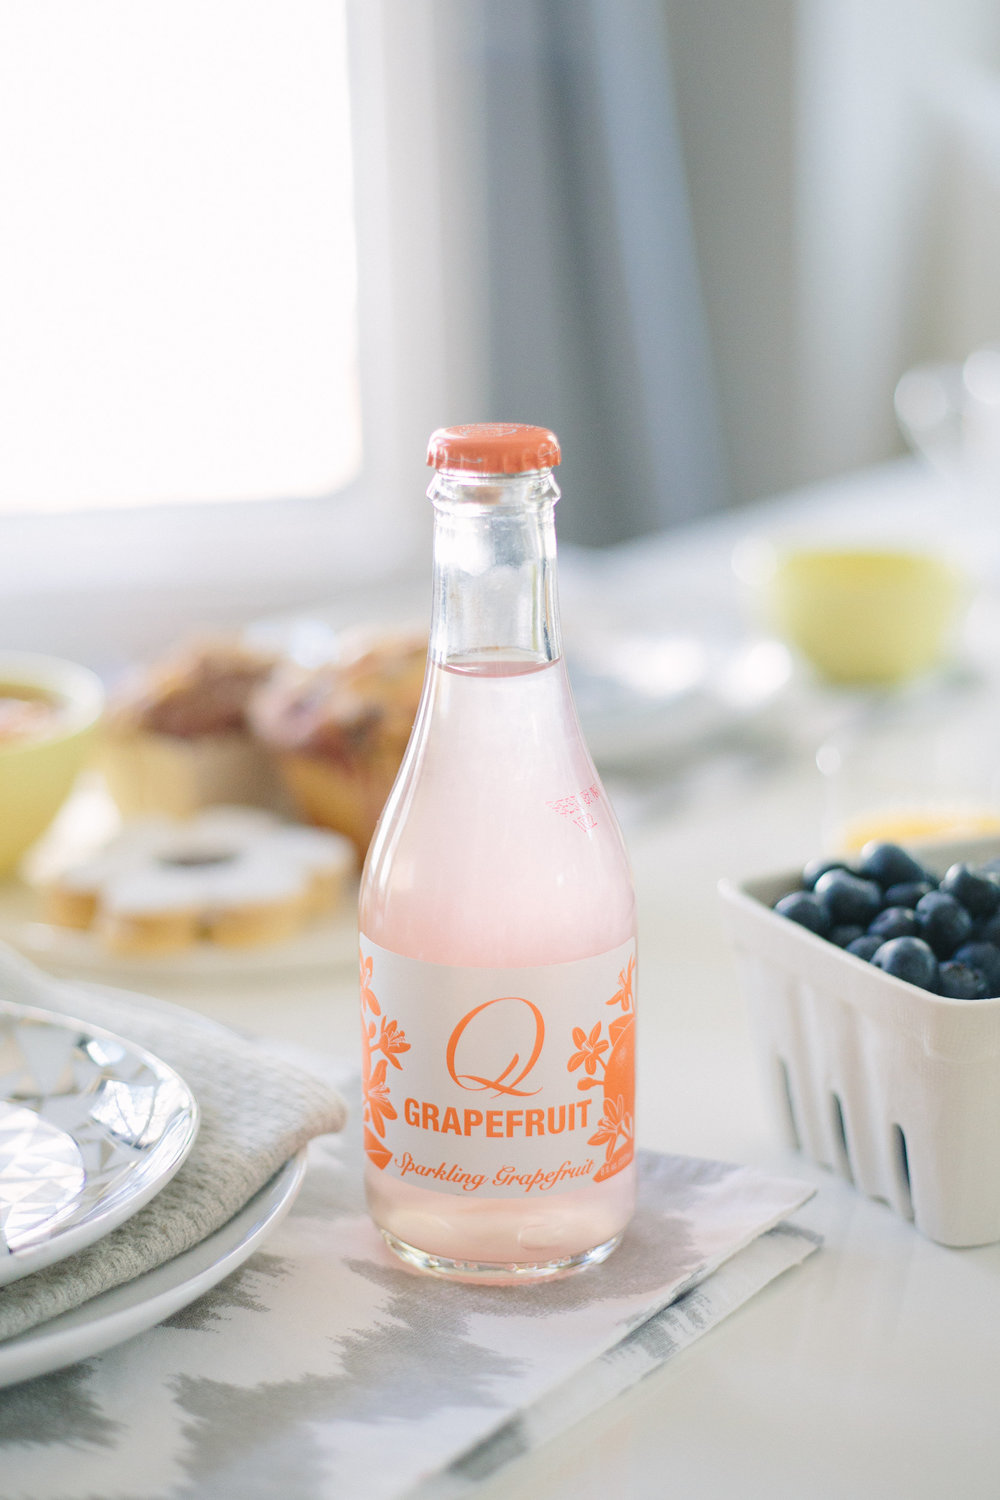 These pretty petite soda bottles from Q Drinks had a splash of color!